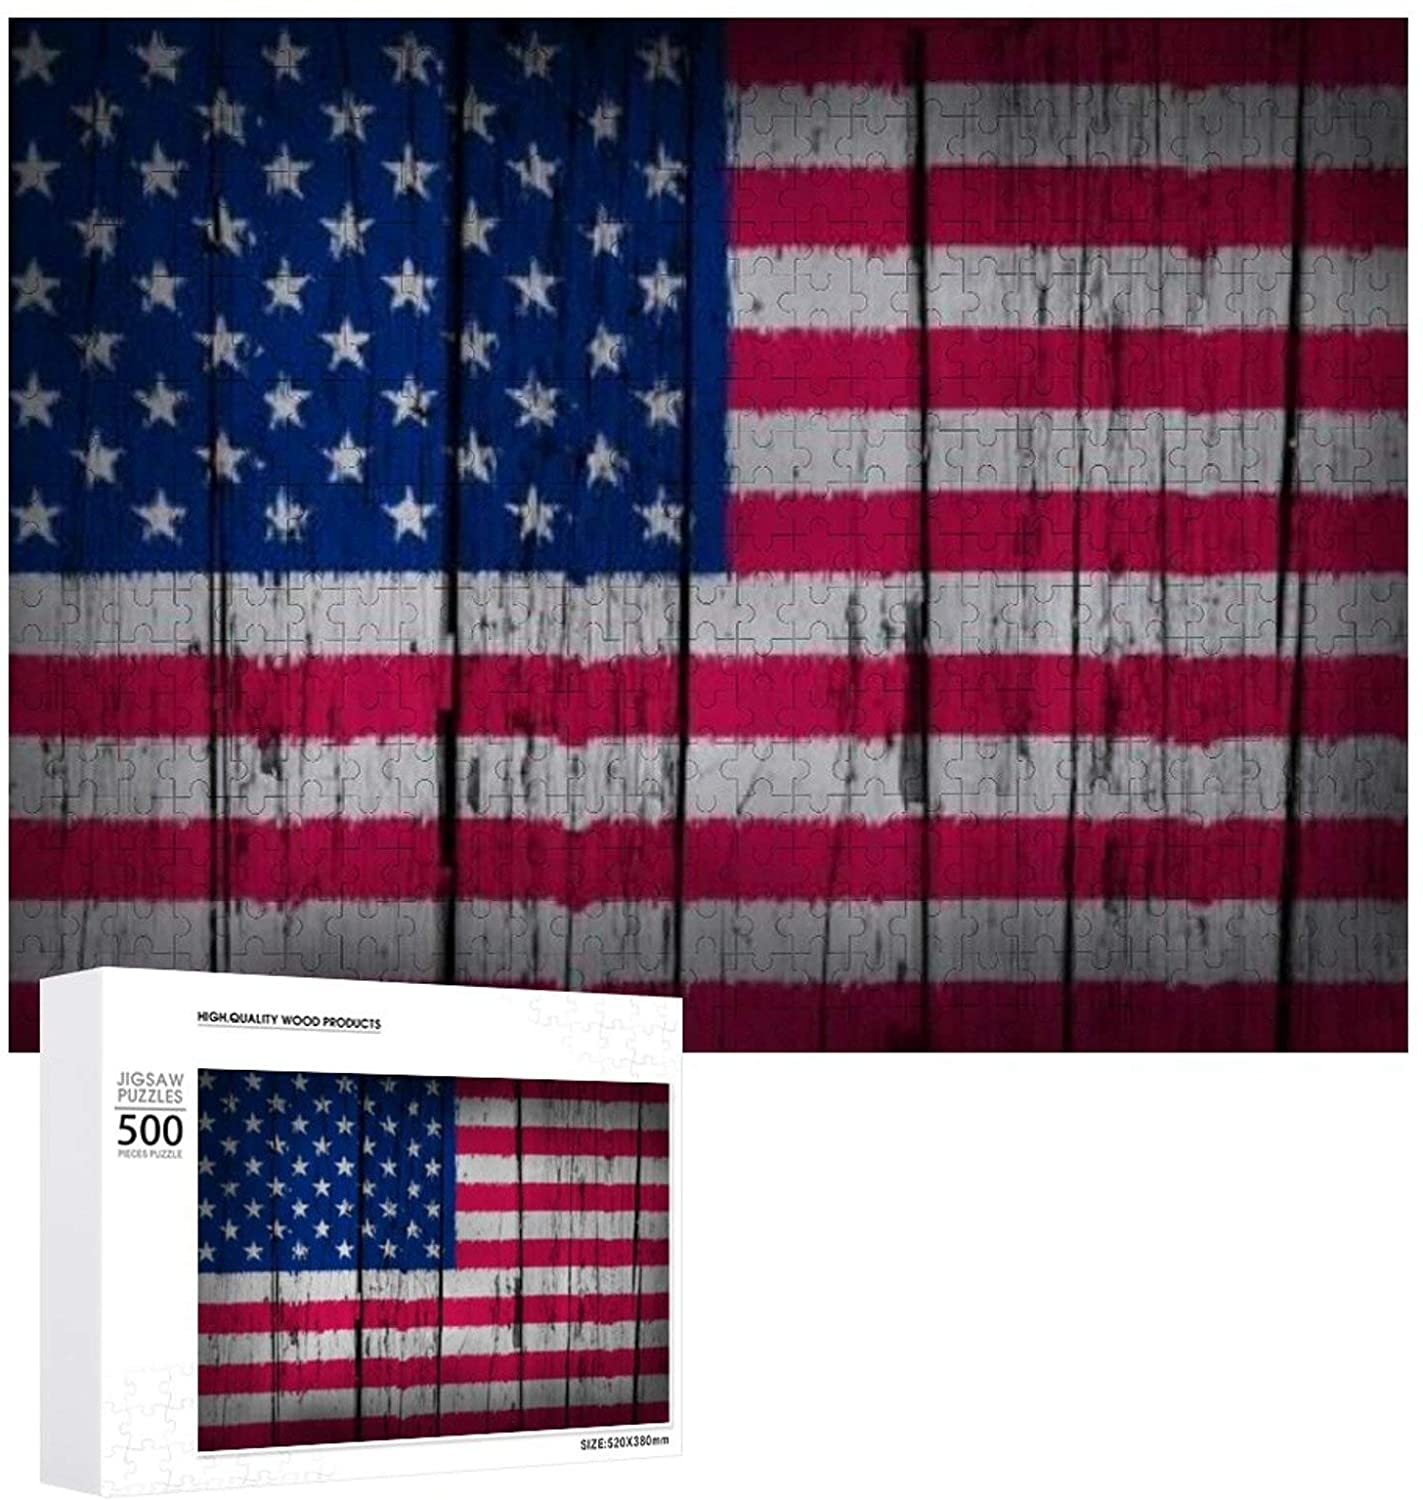 United States of America Grunge Art Background with USA Flag Painted on Wooden Aged Wall Wooden Puzzle 500 Pieces Jigsaw Puzzle for Adults Kids Large Puzzle Game Toys Gift Christmas Holiday Present